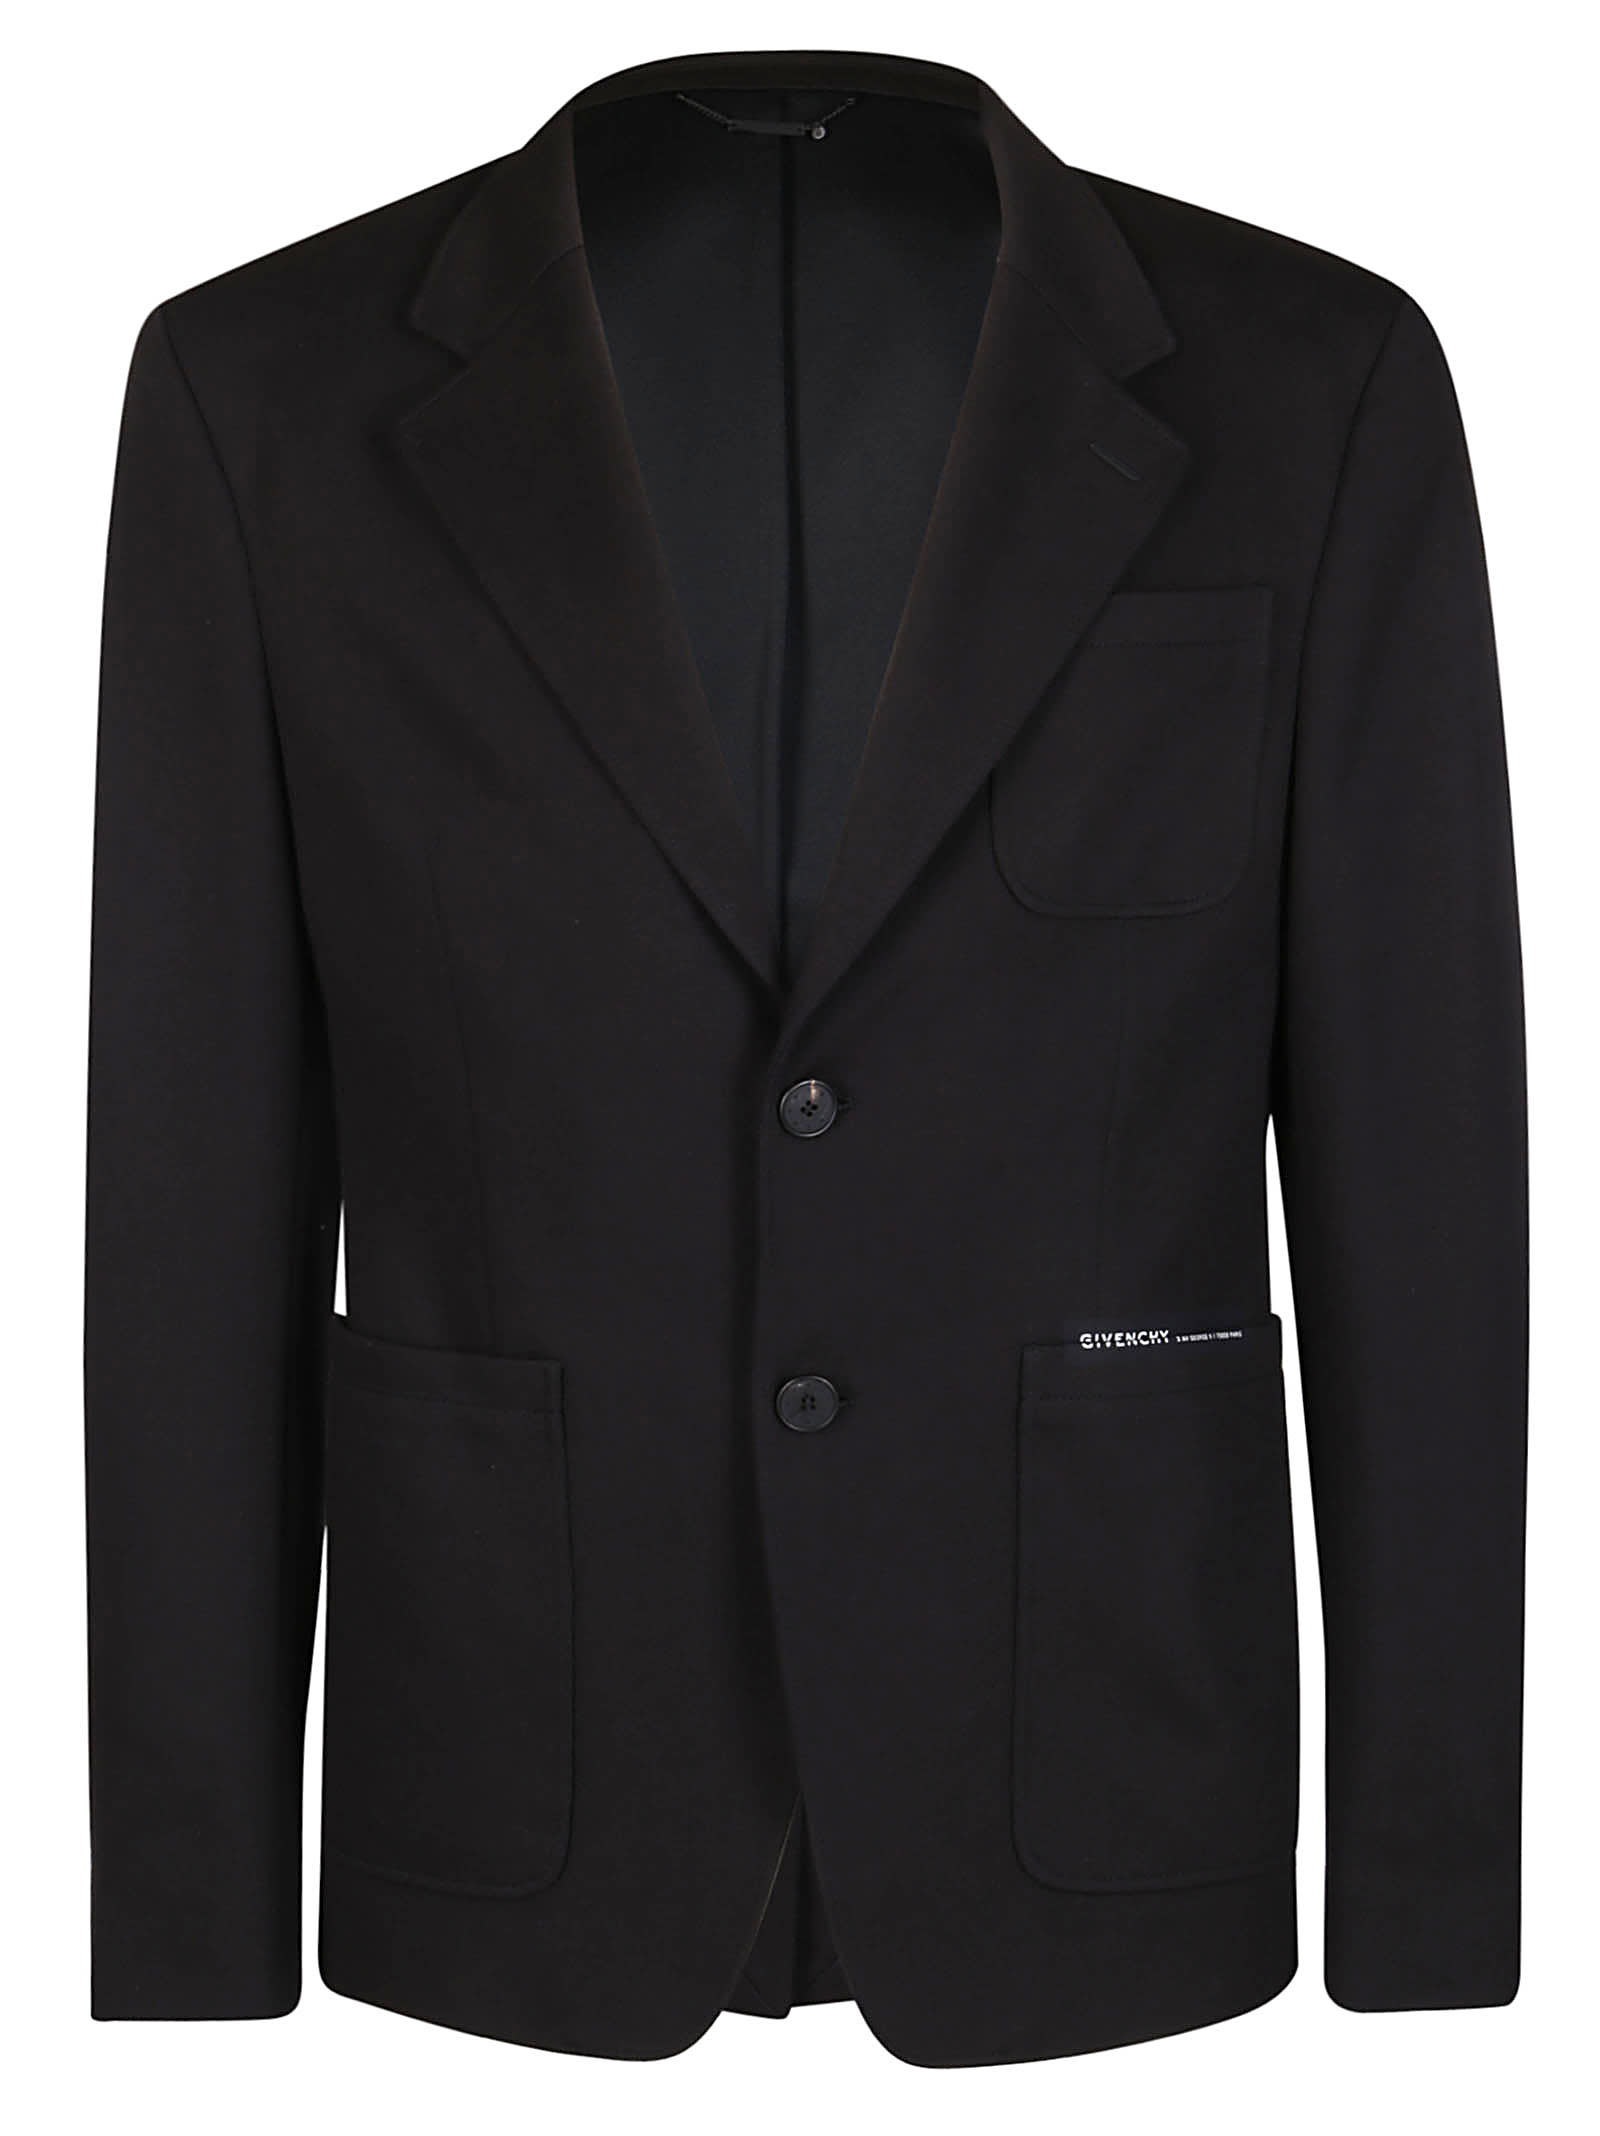 Givenchy Black Cotton Blazer